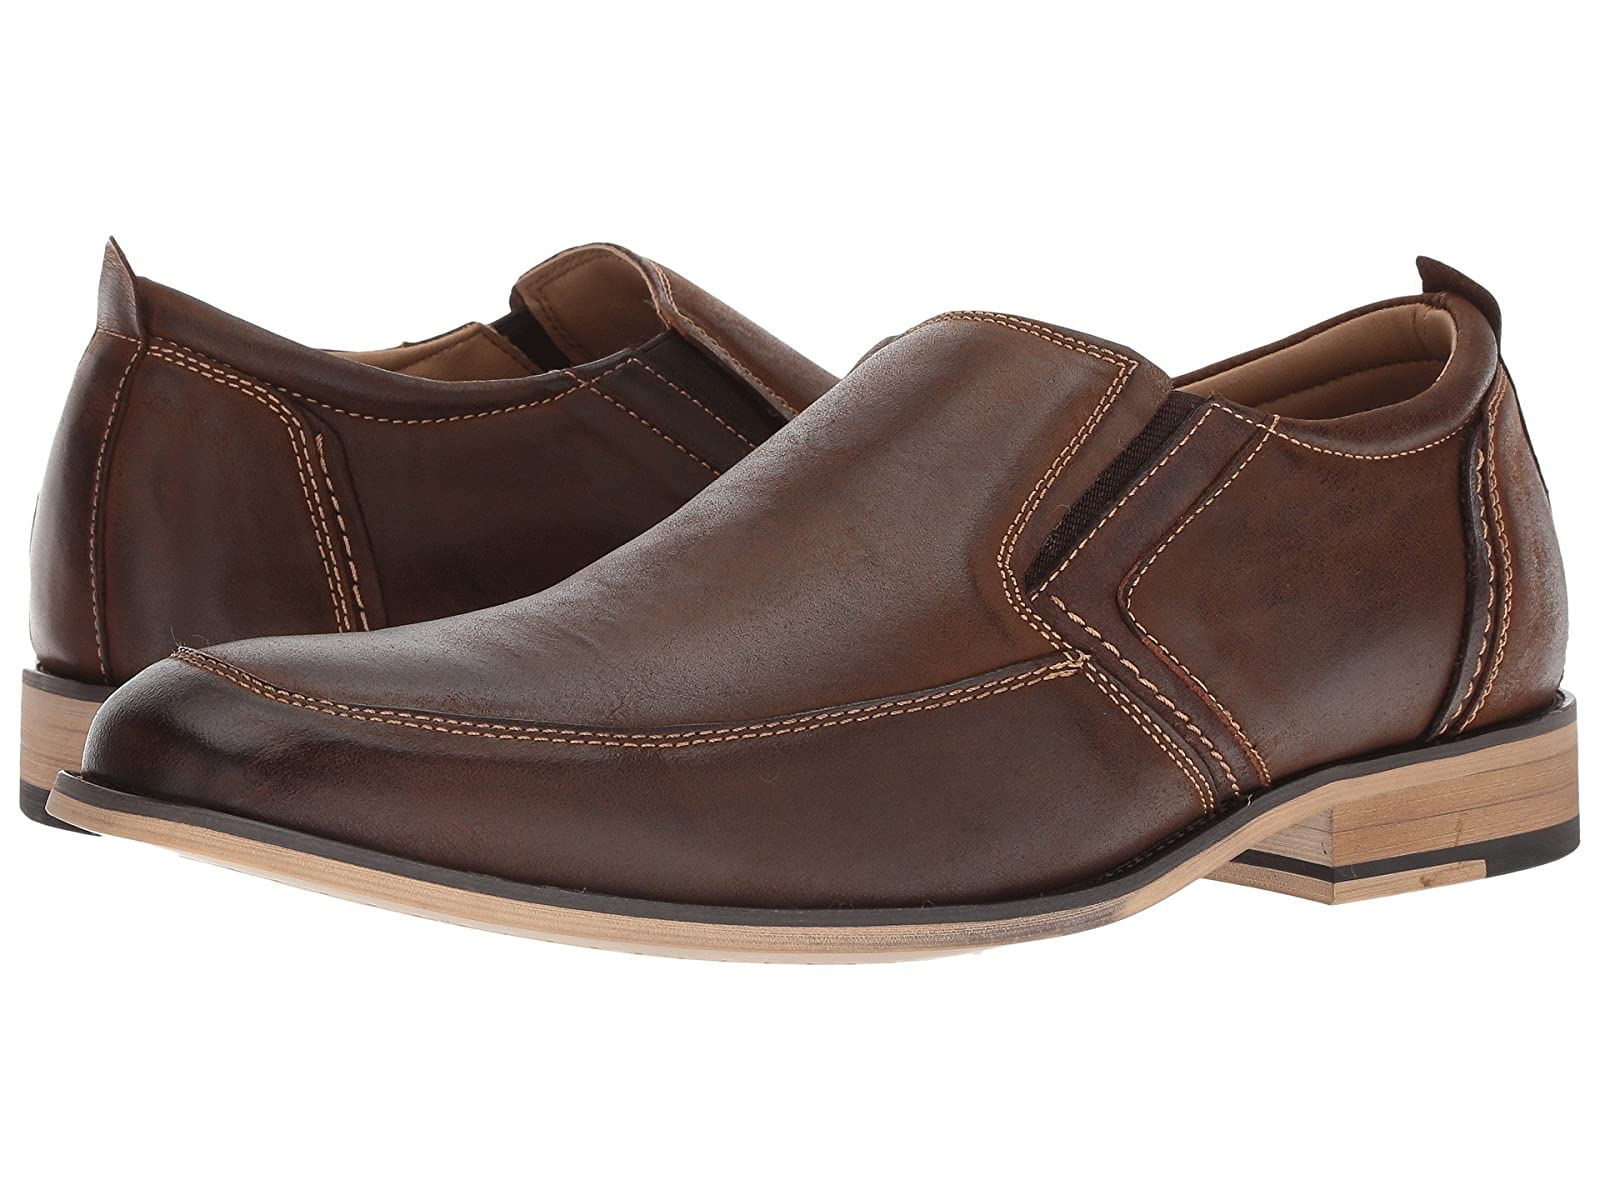 Steve Madden JerminAtmospheric grades have affordable shoes